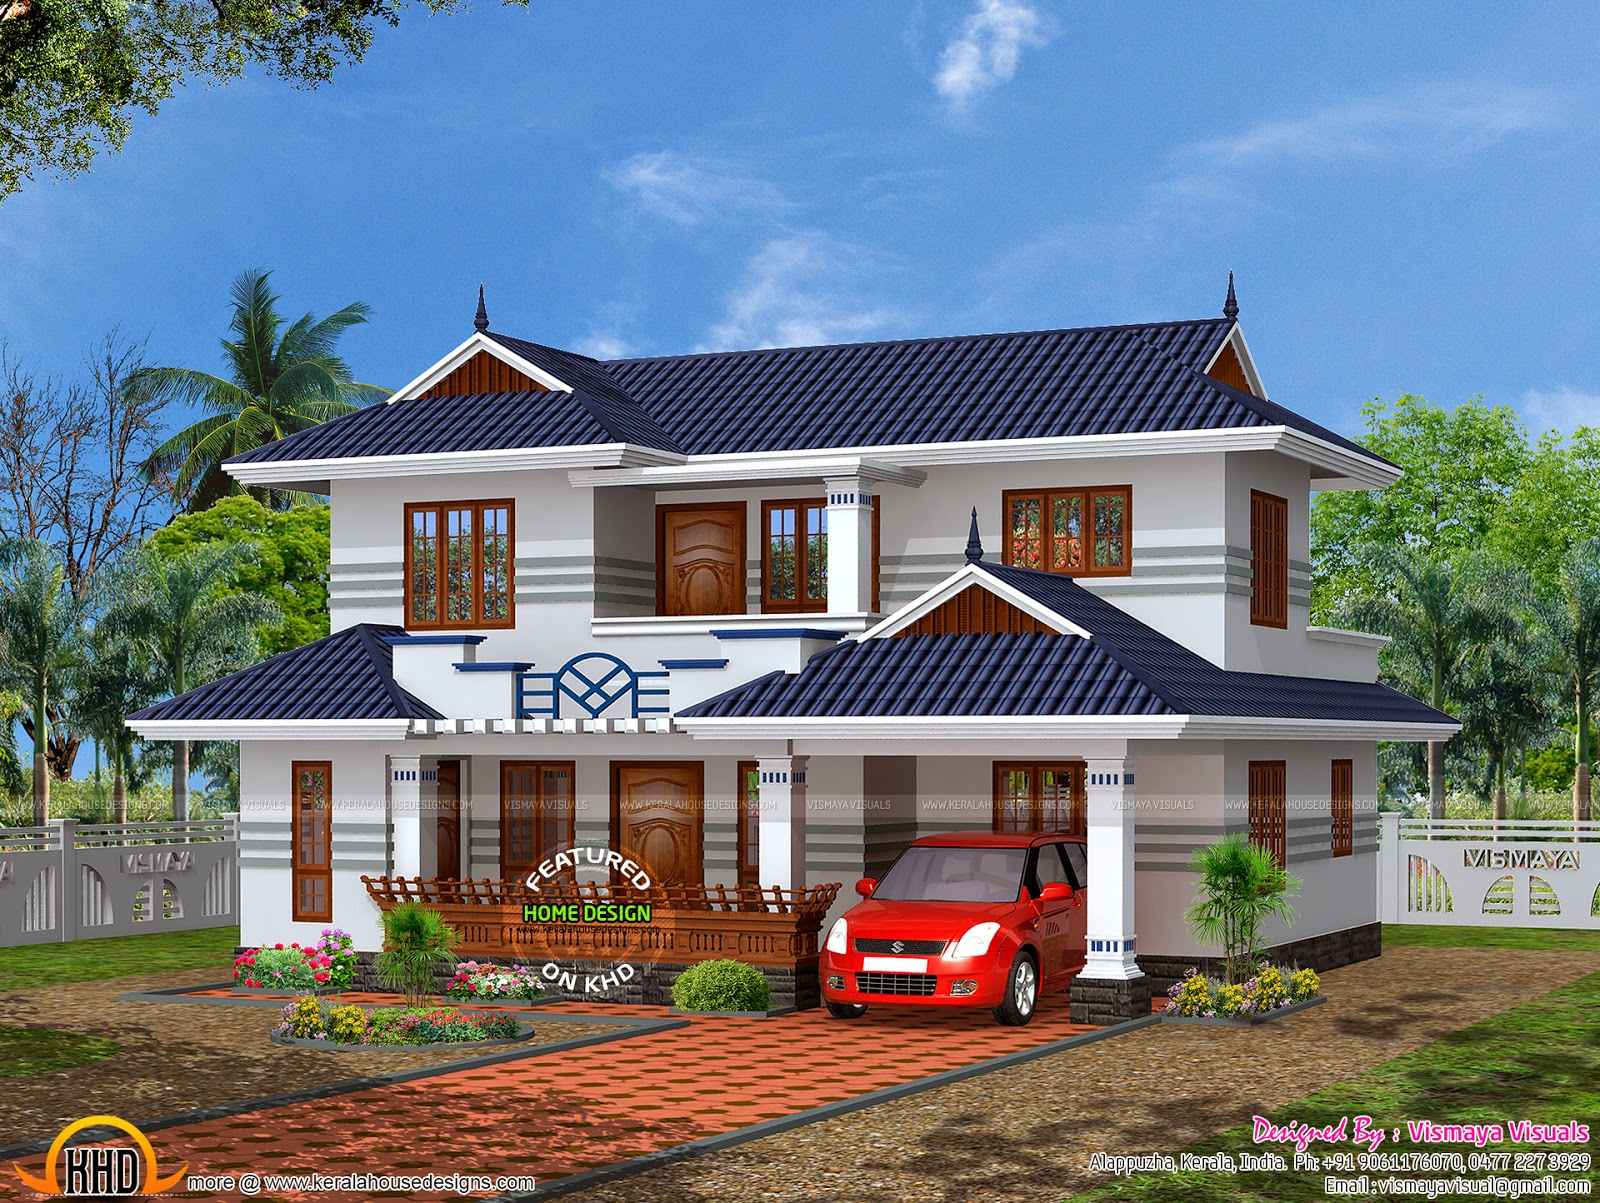 Typical kerala house plan kerala home design and floor plans for Kerala house plan images